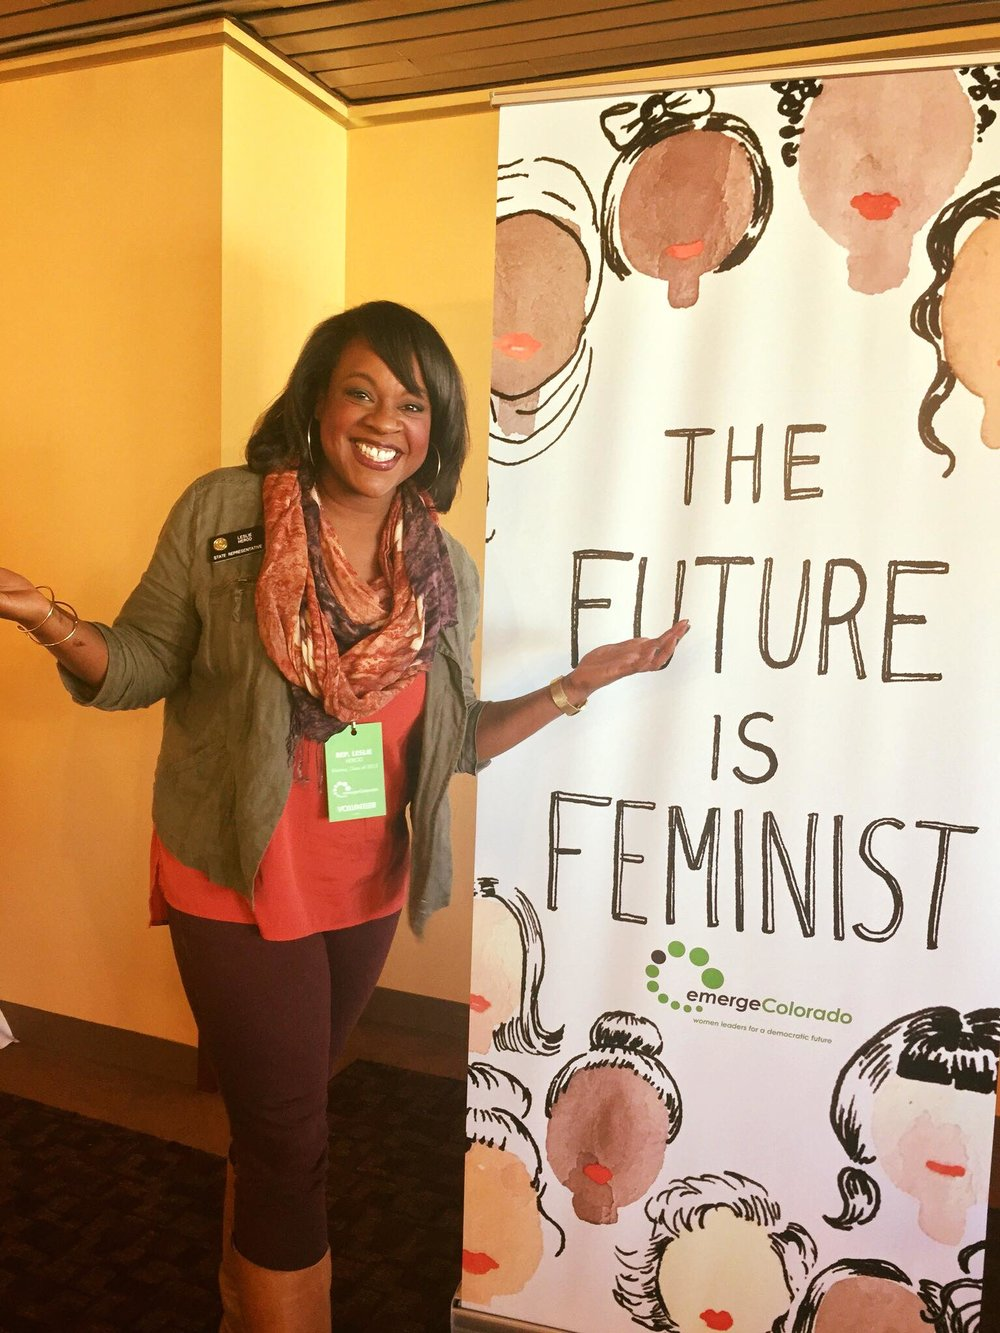 Herod, at an Emerge Colorado event, next to the art of Kimothy Joy. Photo from social media.